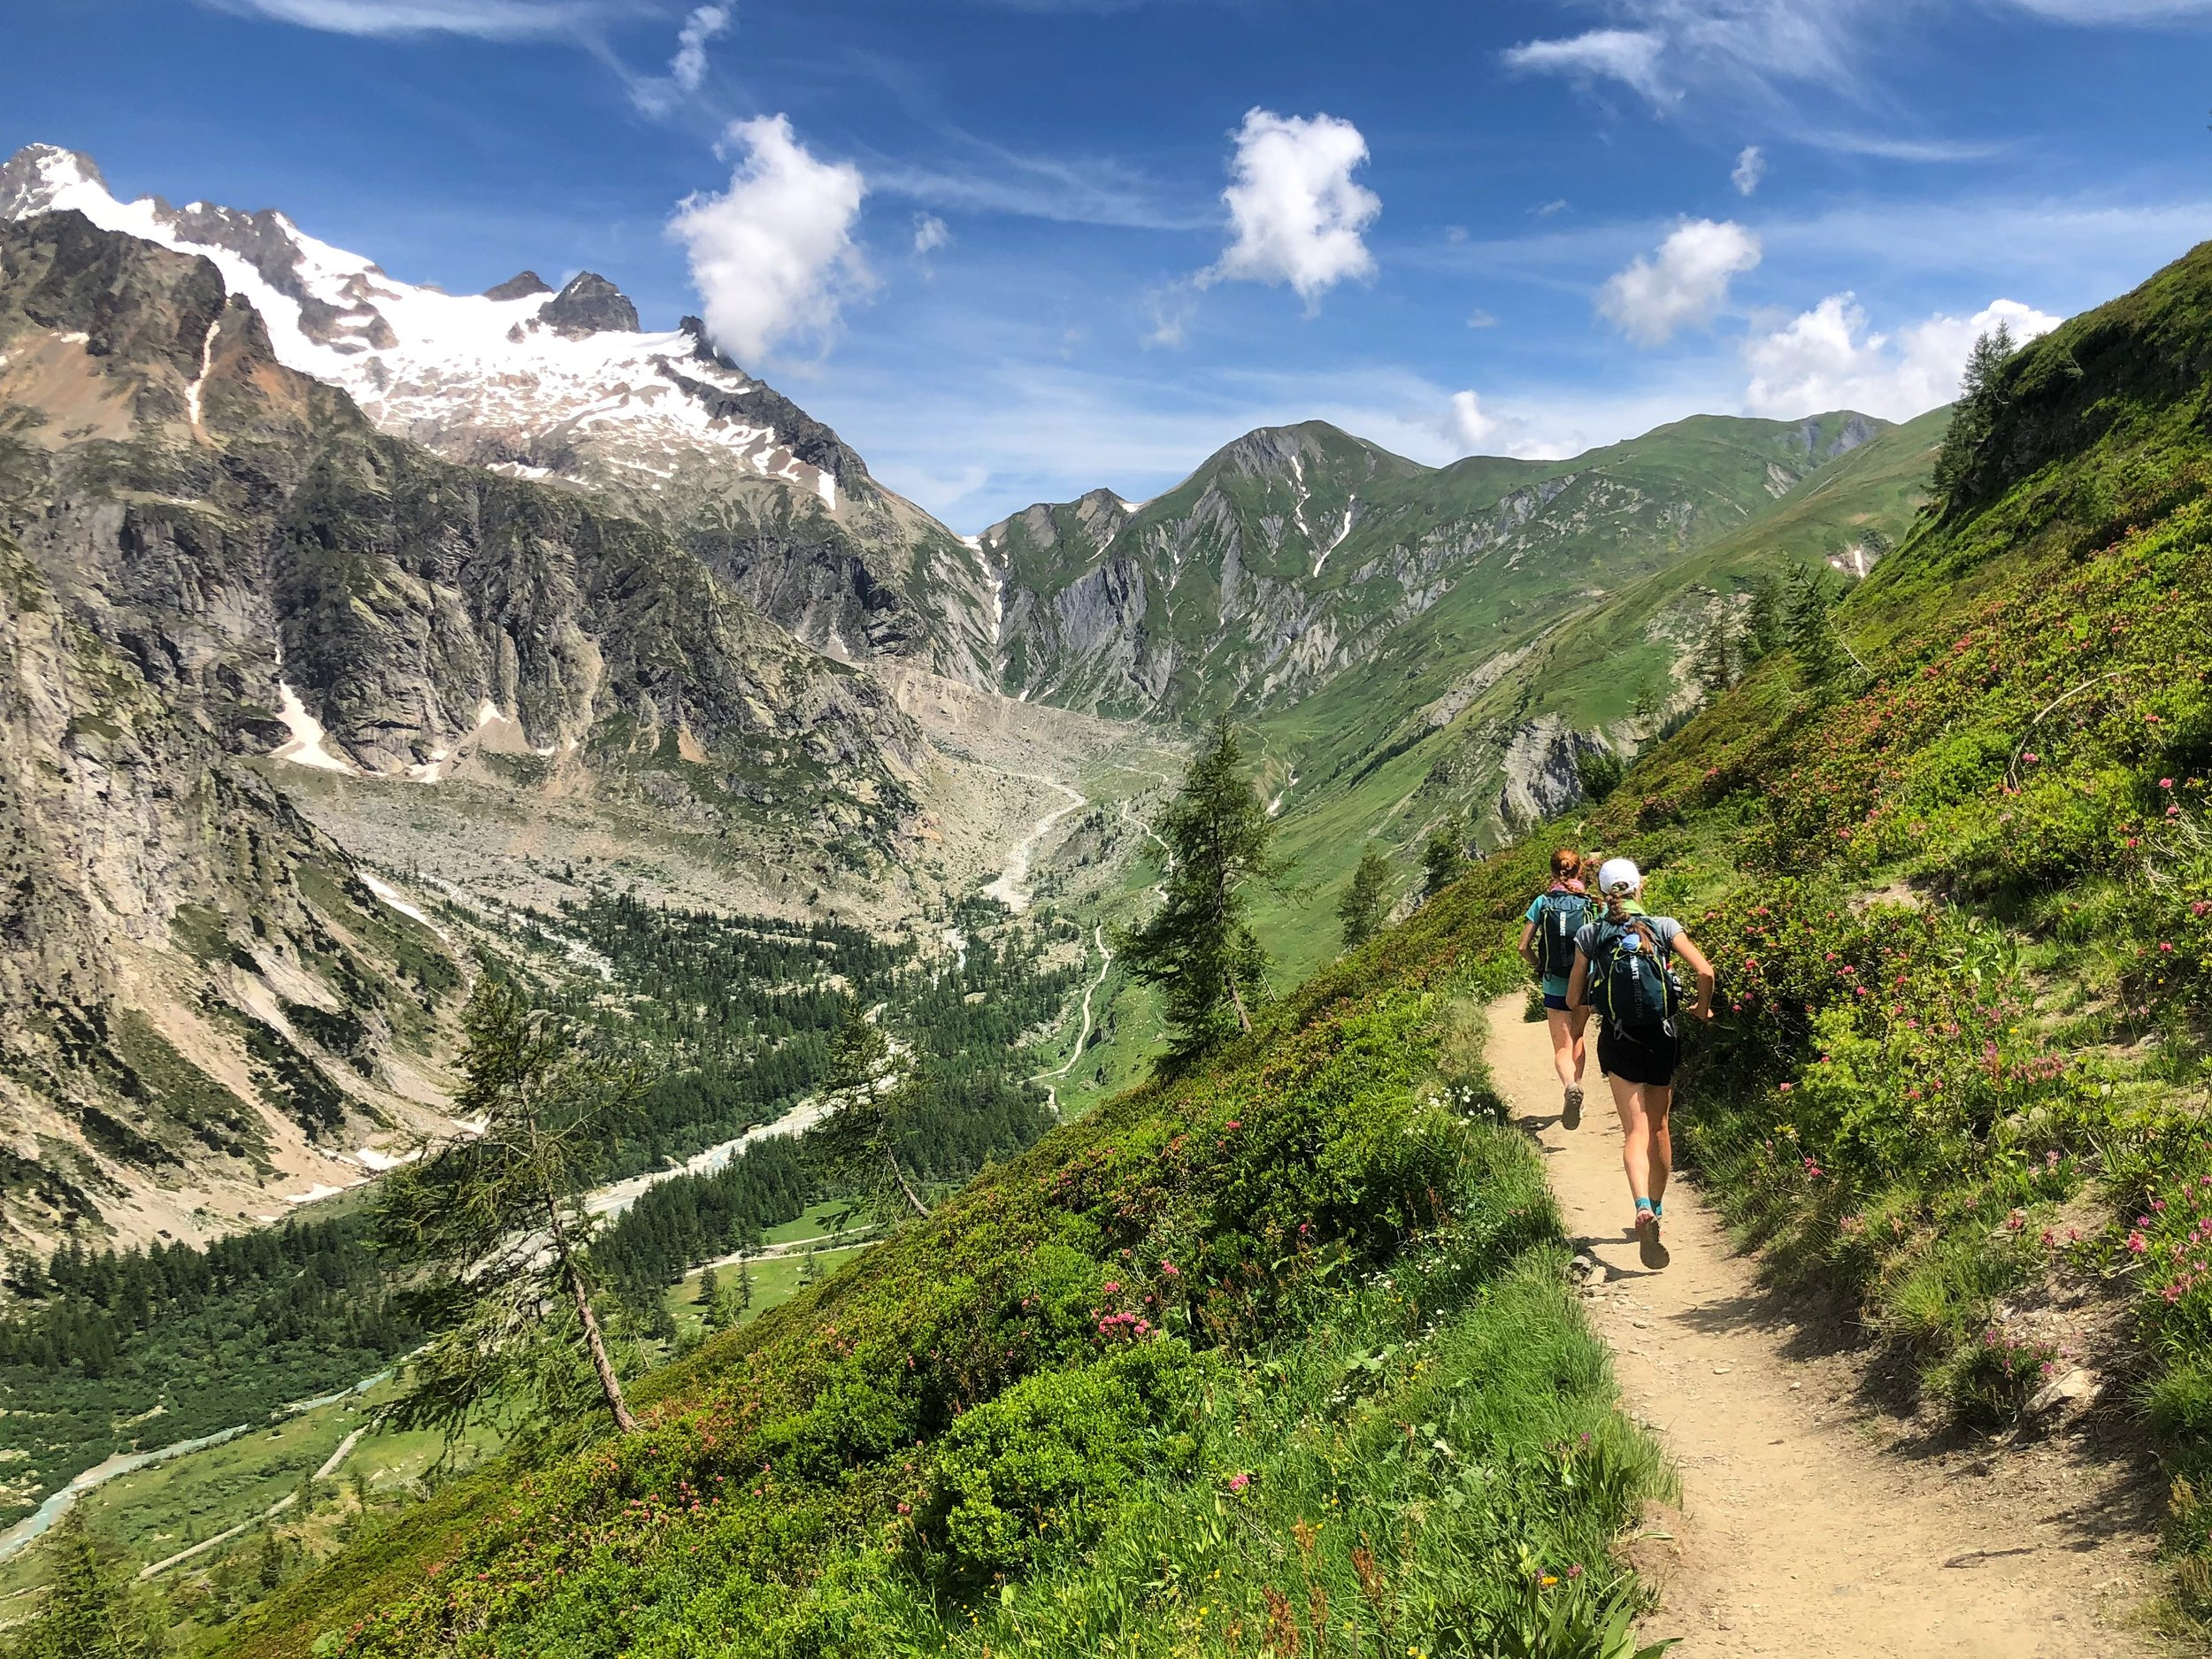 https://www.wetravel.com/trips/chamonix-runcation-training-camp-liz-gill-chamonix-90295837